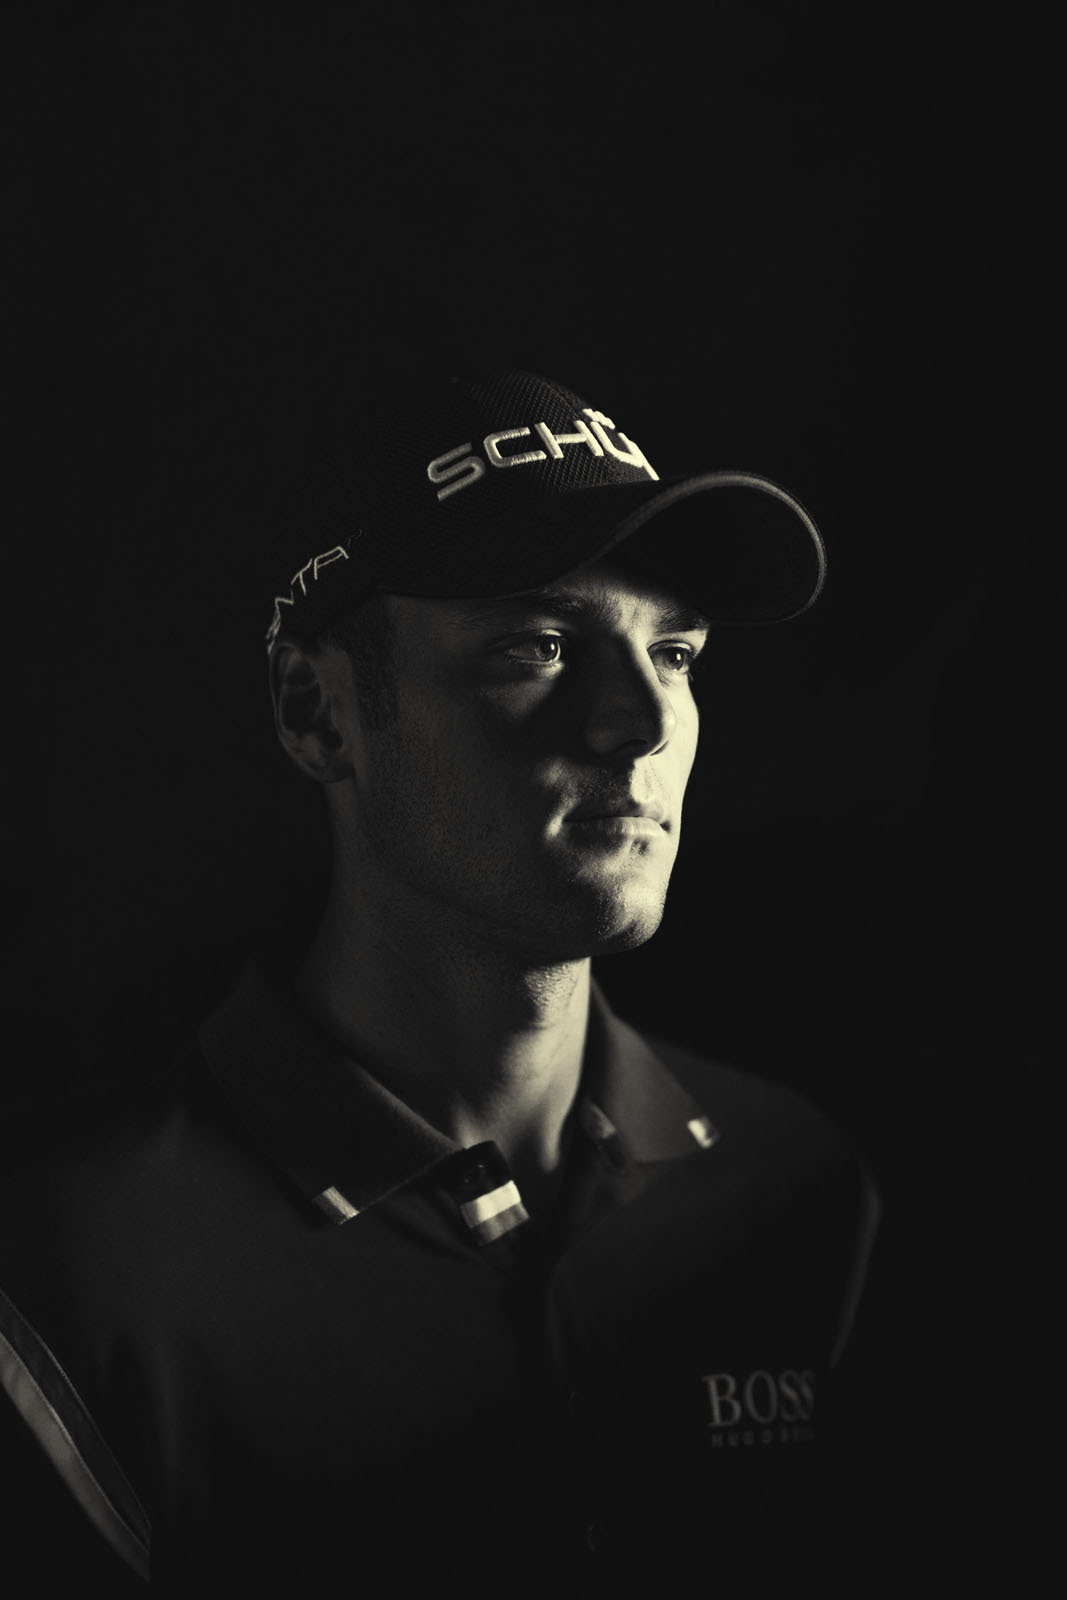 Martin Kaymer of Germany, photographed by Walter Iooss Jr. for an essay on the golf's global profile.